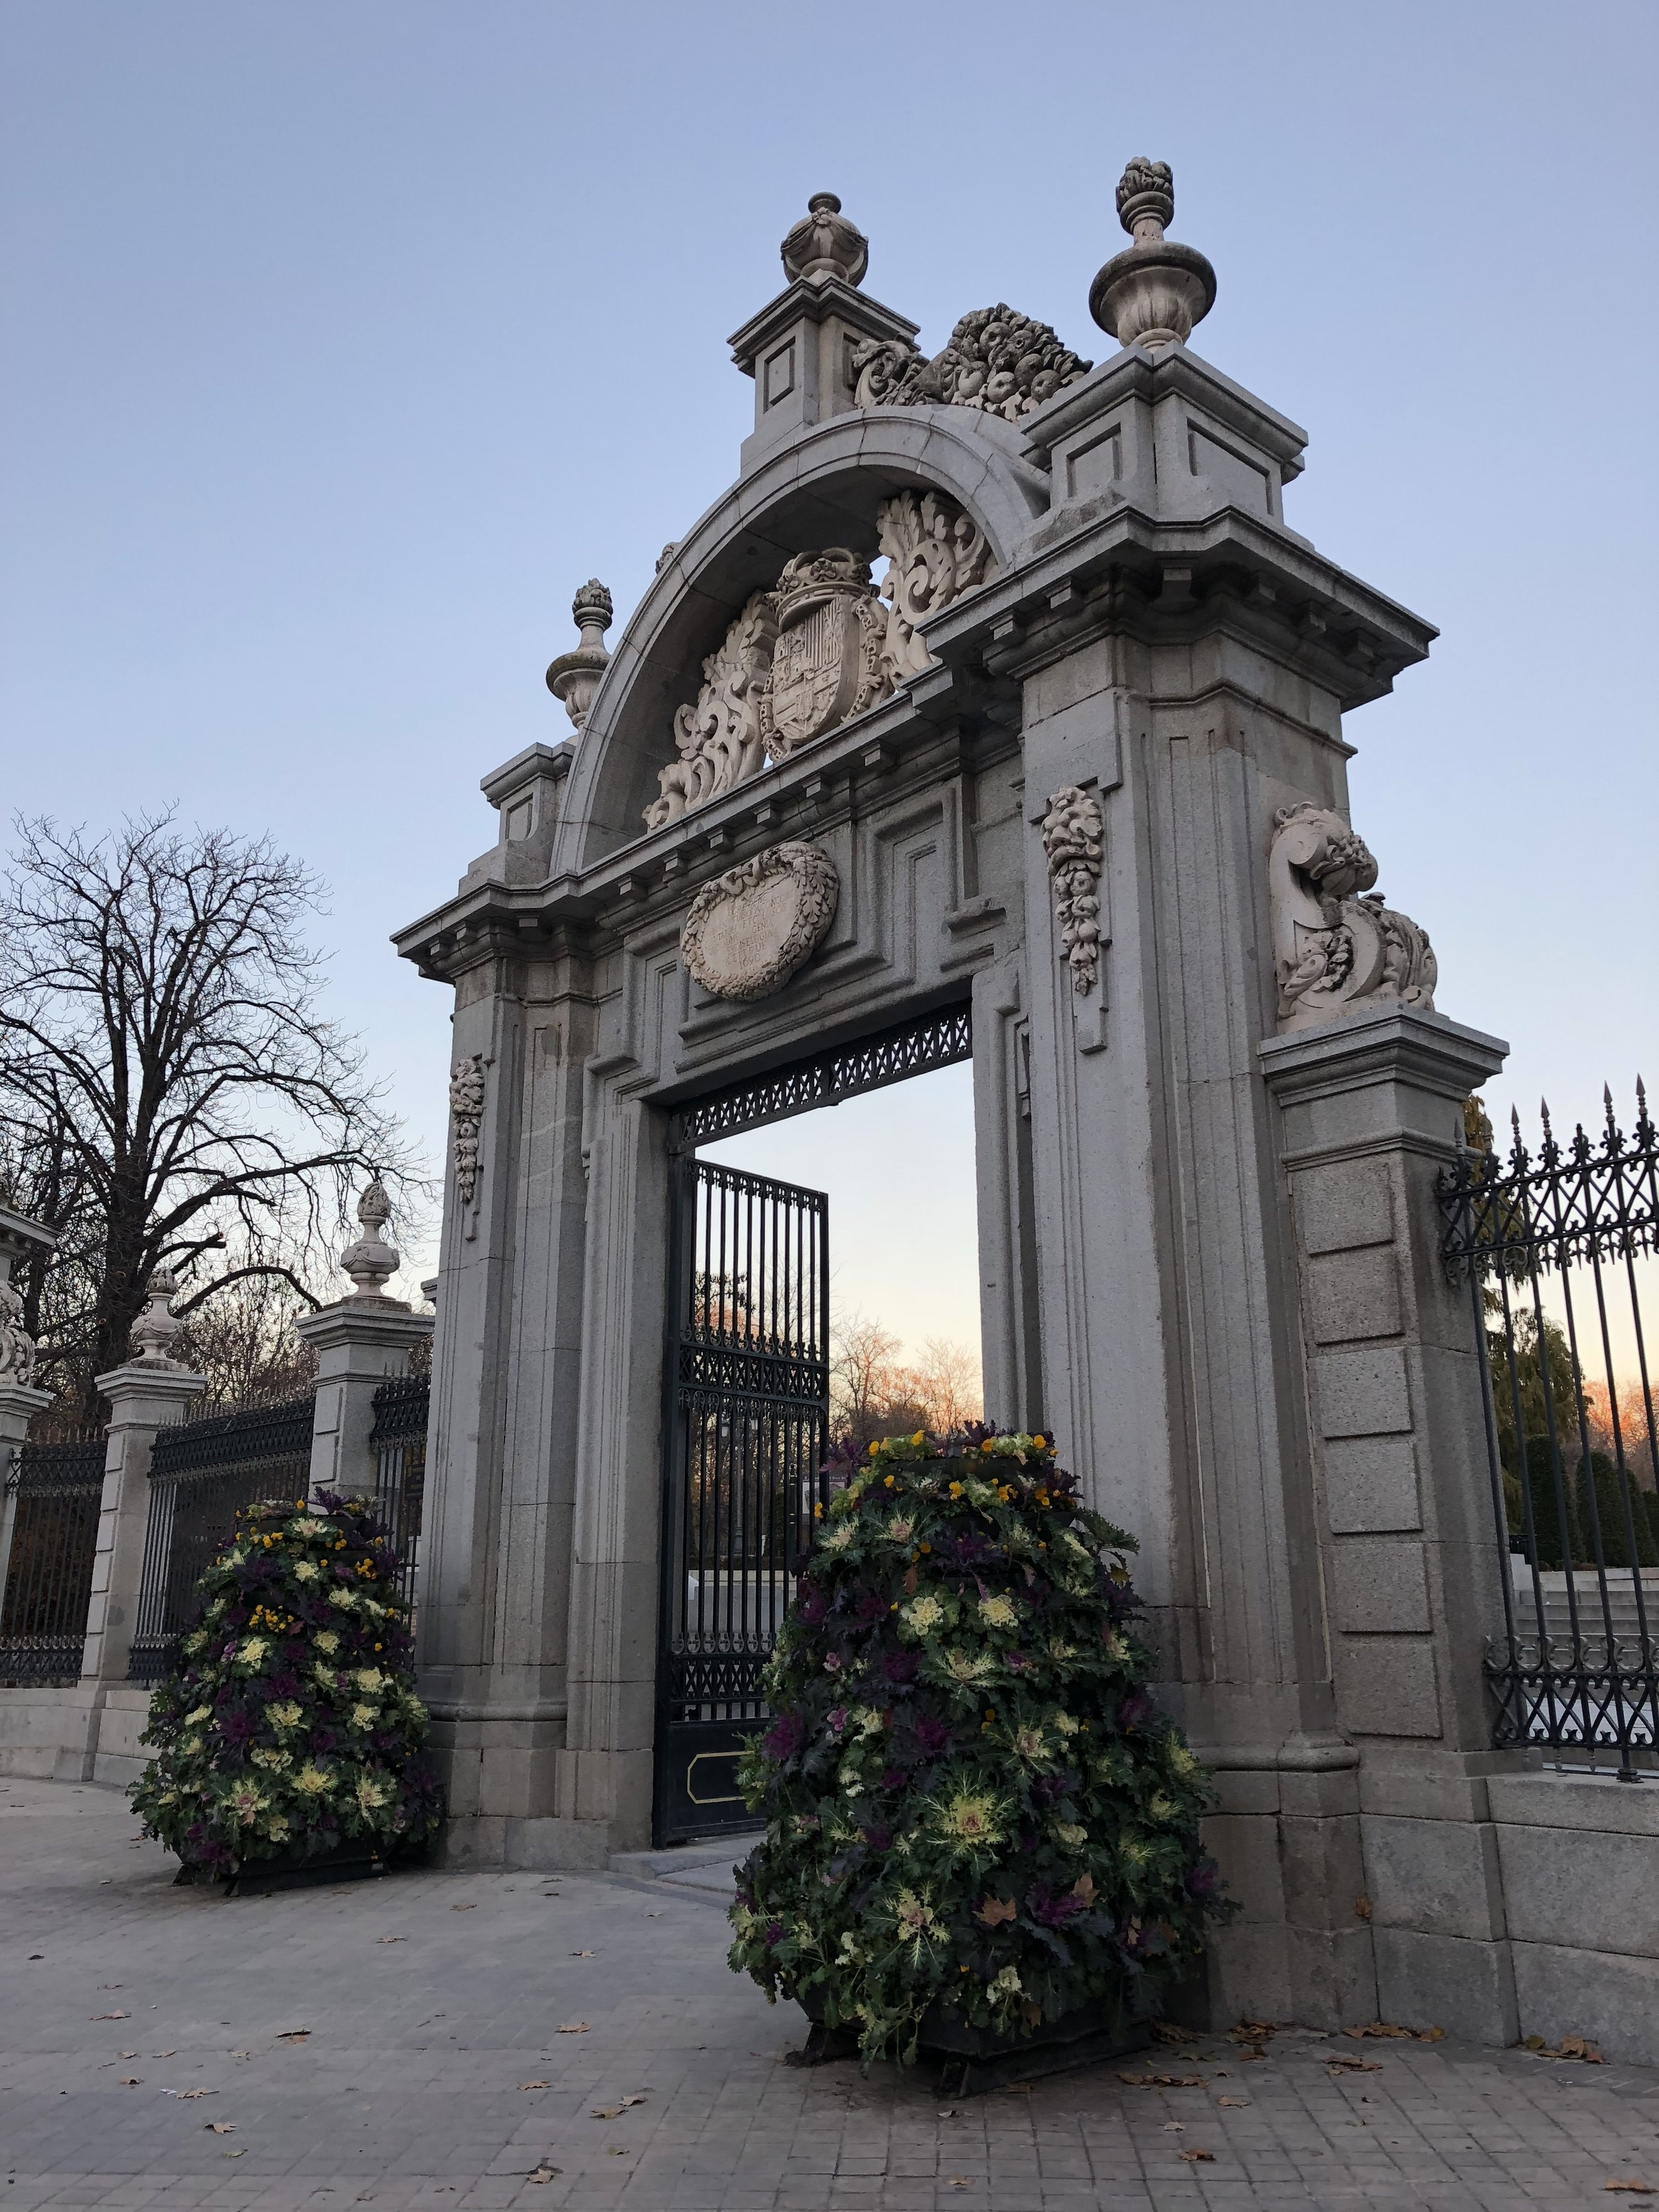 One of the ornate entrances to Retiro Park in Madrid.